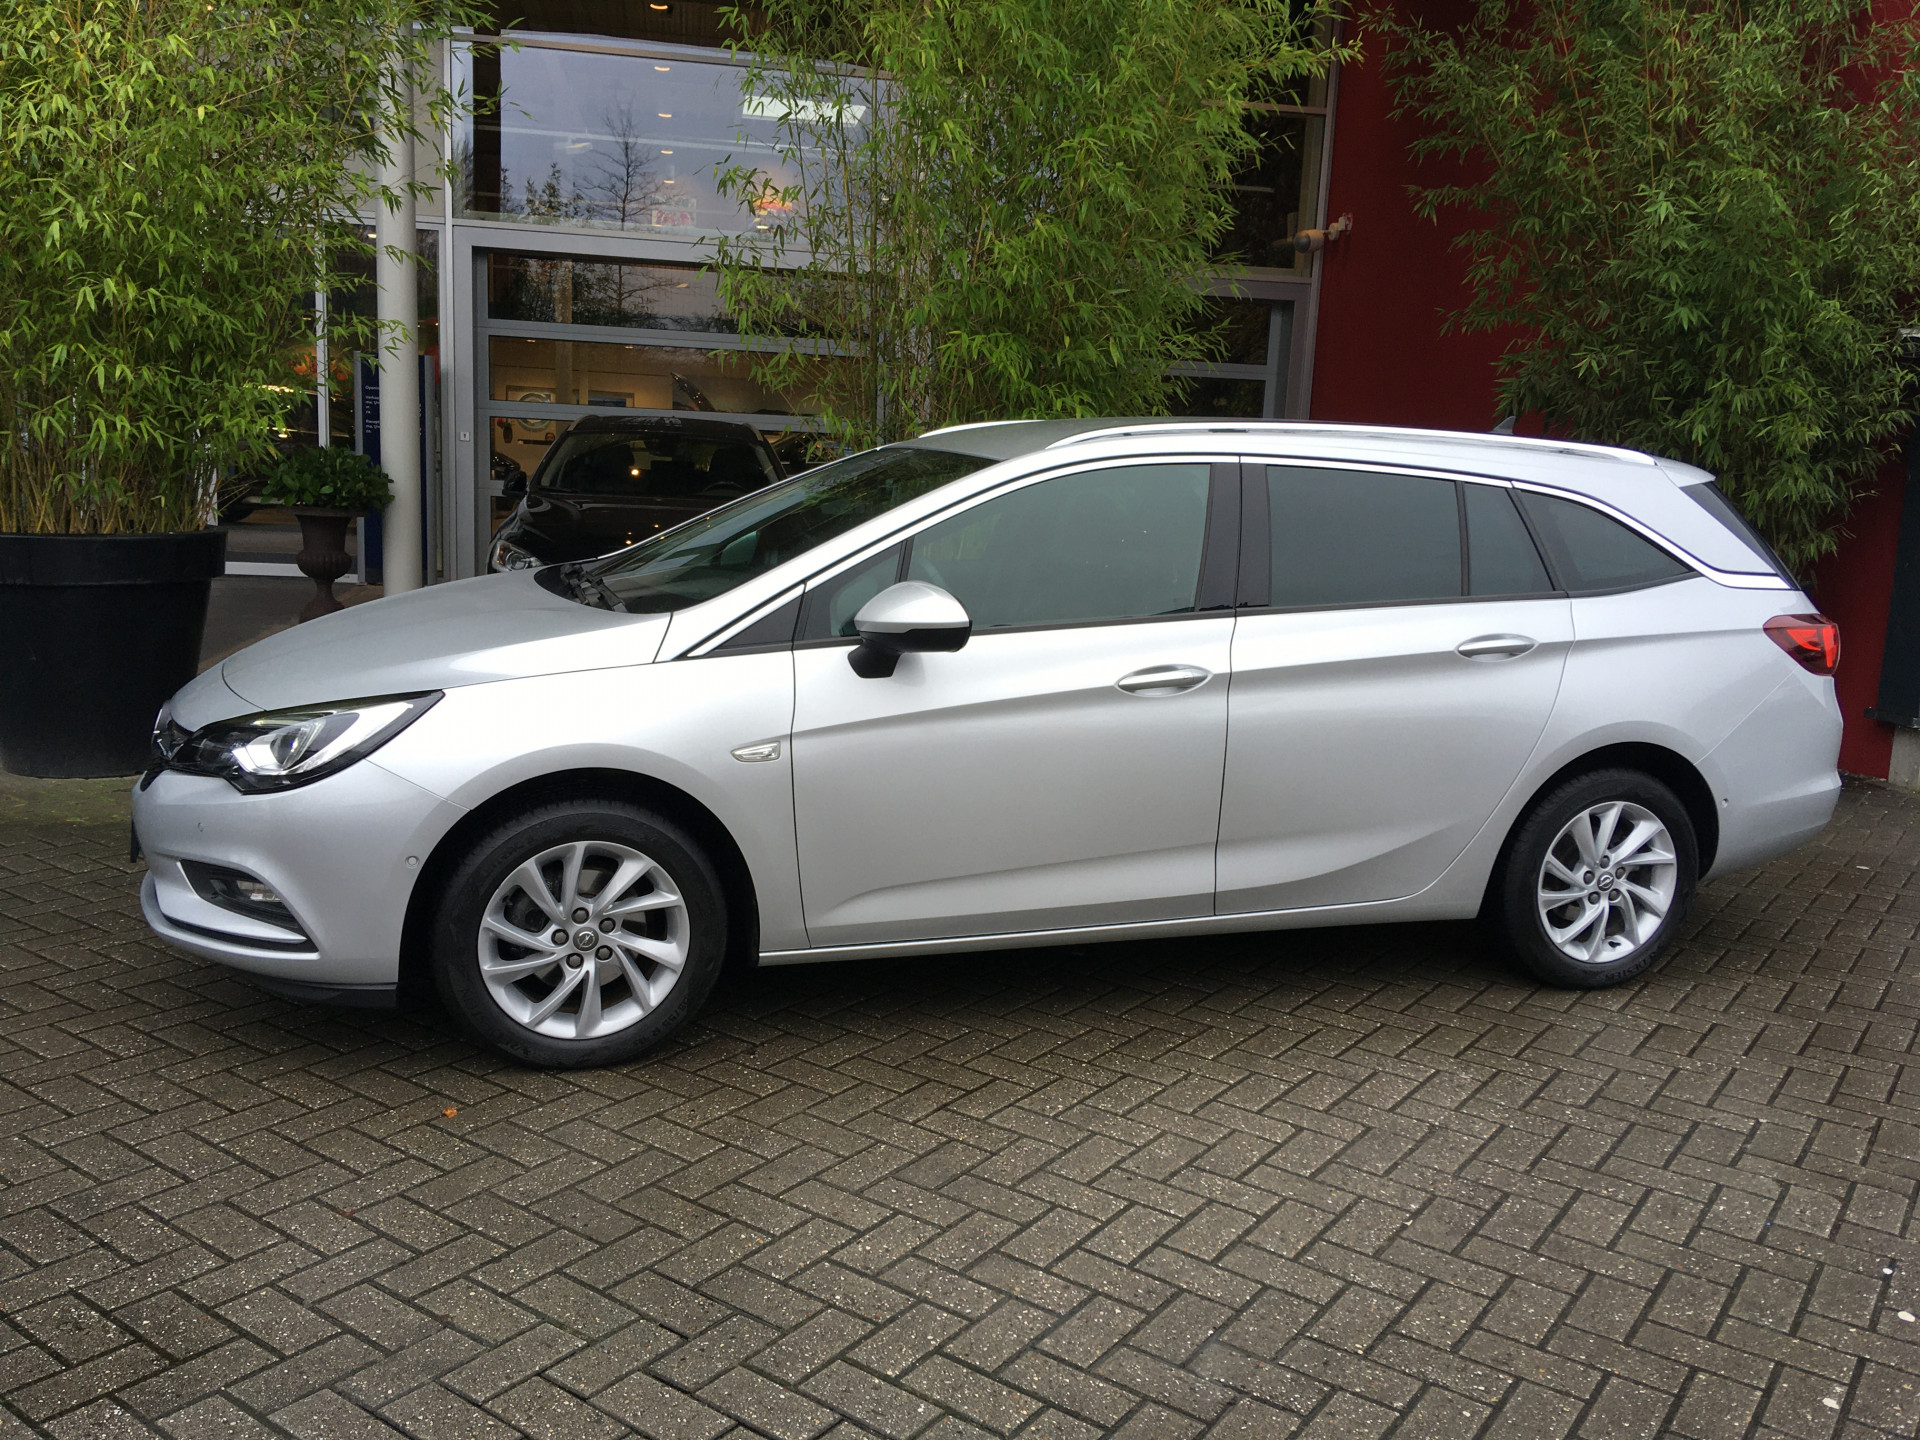 Opel Astra Sports Tourer 1.4 T 110 kw Innovation